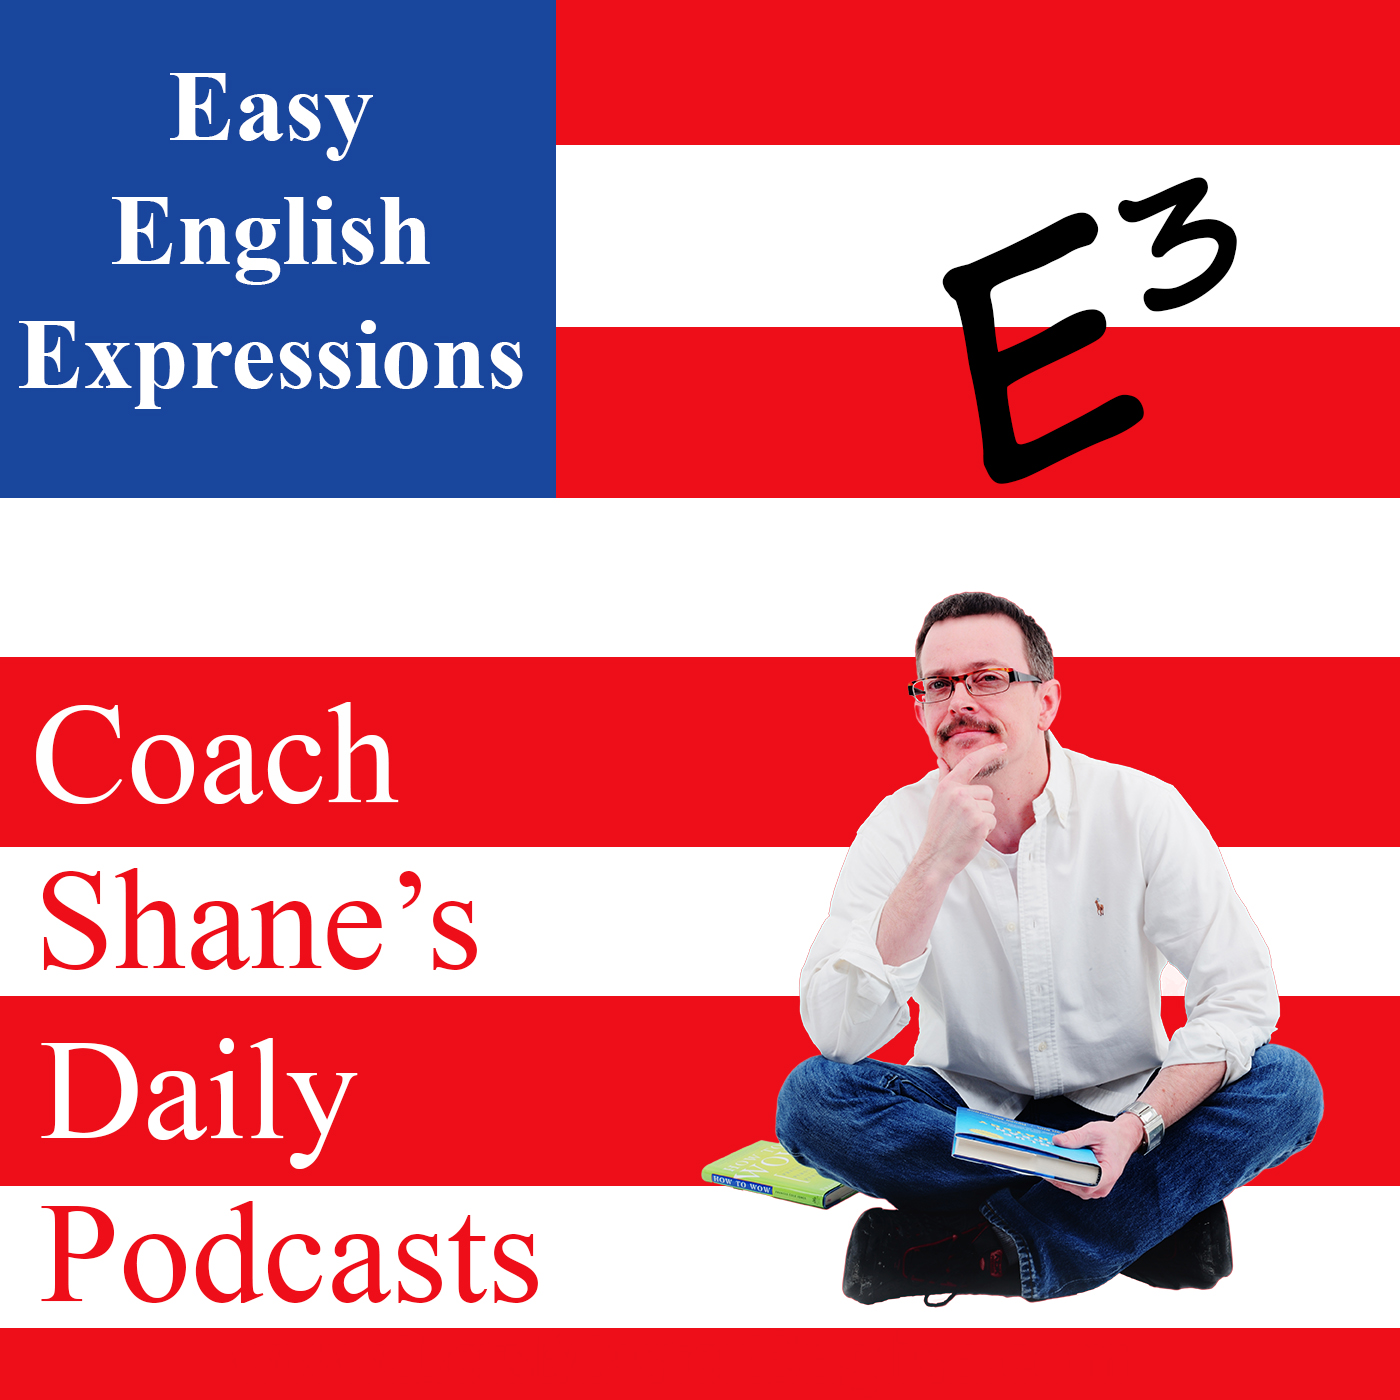 37 Daily Easy English Expression PODCAST—LUCK vs LOCK vs LOOK